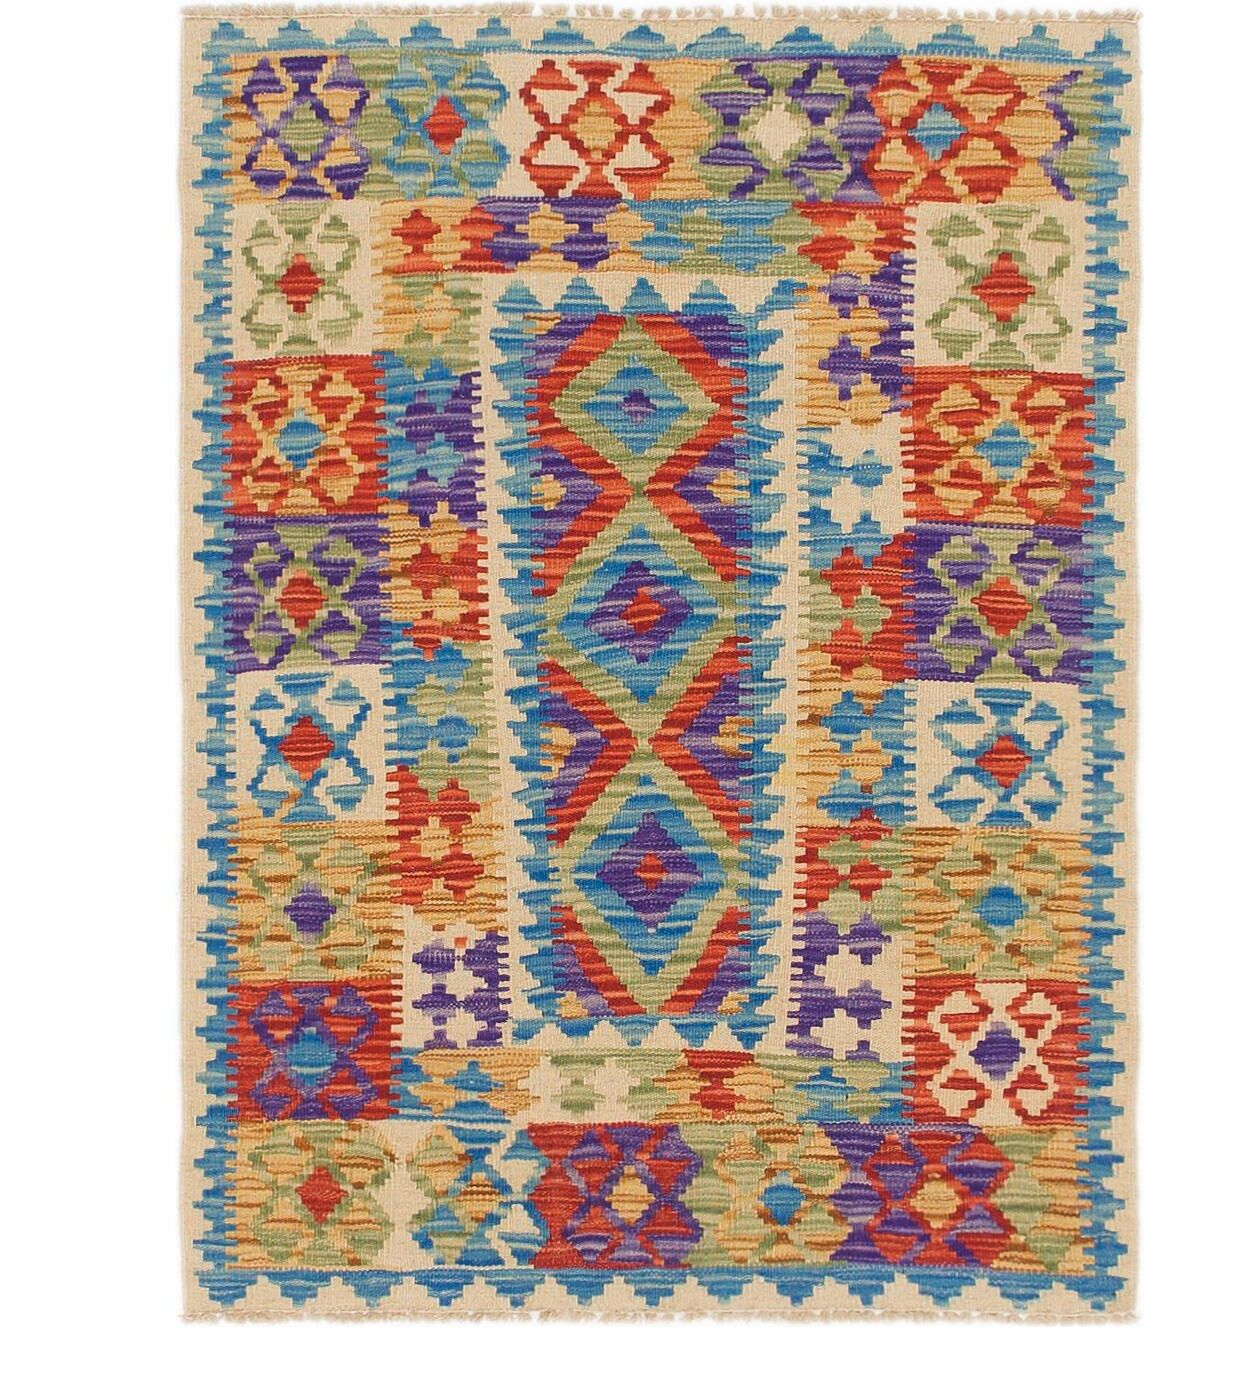 One-of-a-Kind Alverta Kilim Maymana Hand-Knotted Wool 3' x 4' Violet/Blue/Red Area Rug